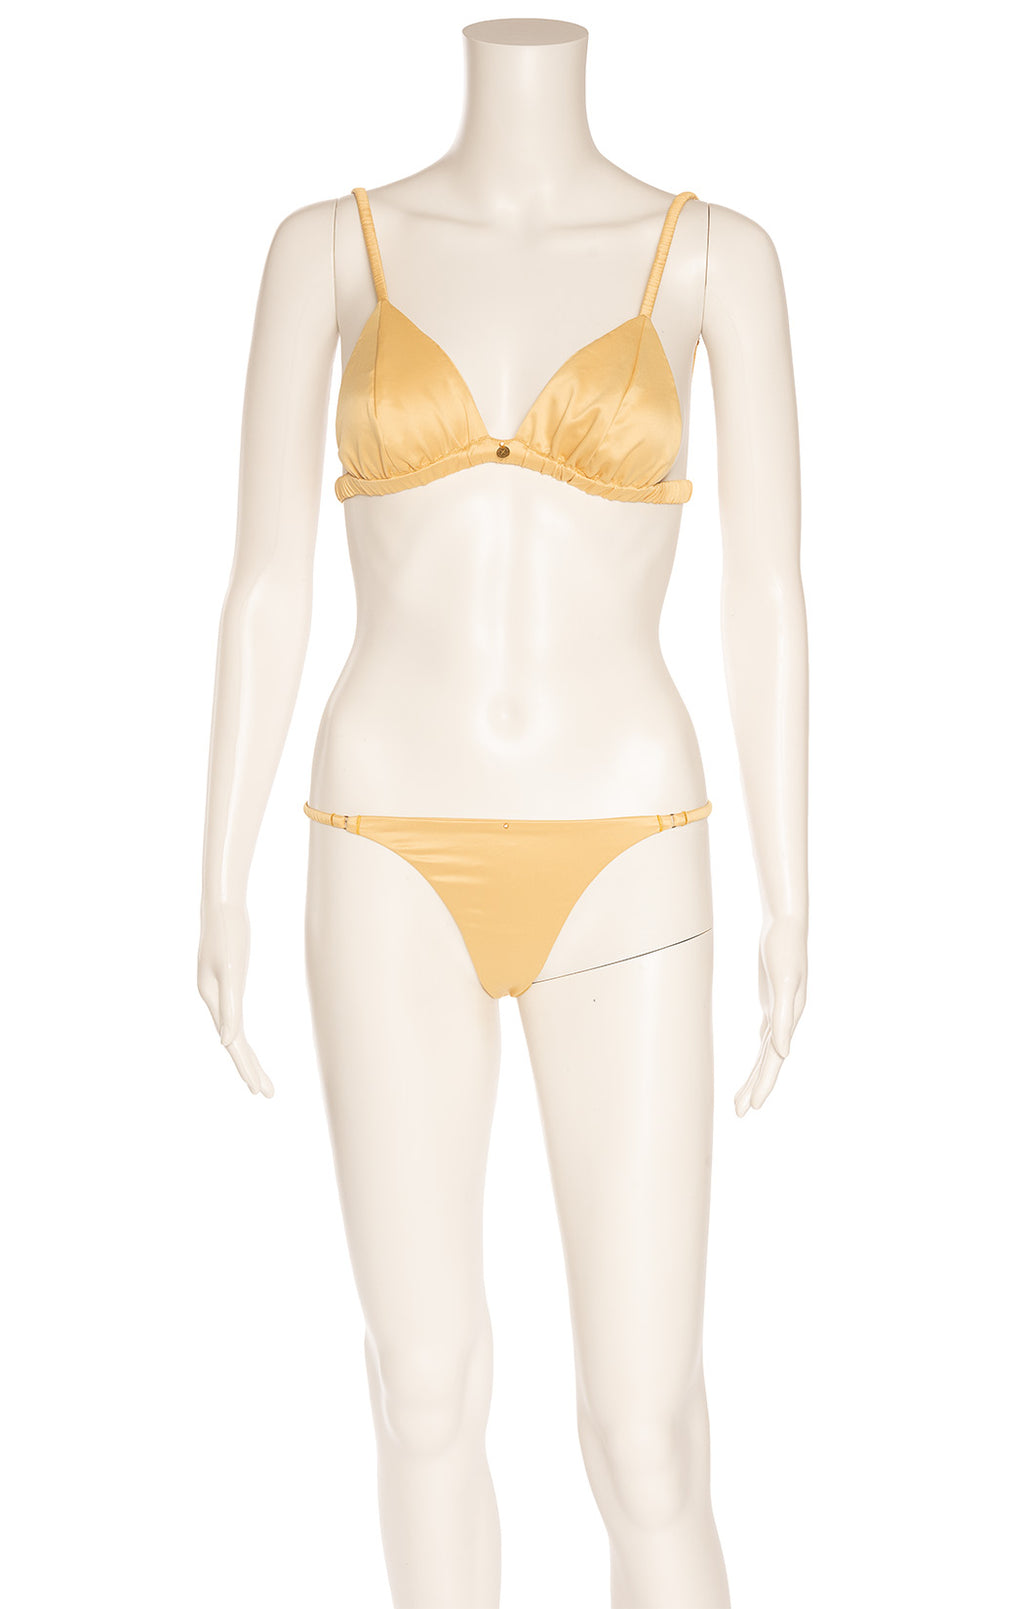 Gold tone bikini and matching shorts